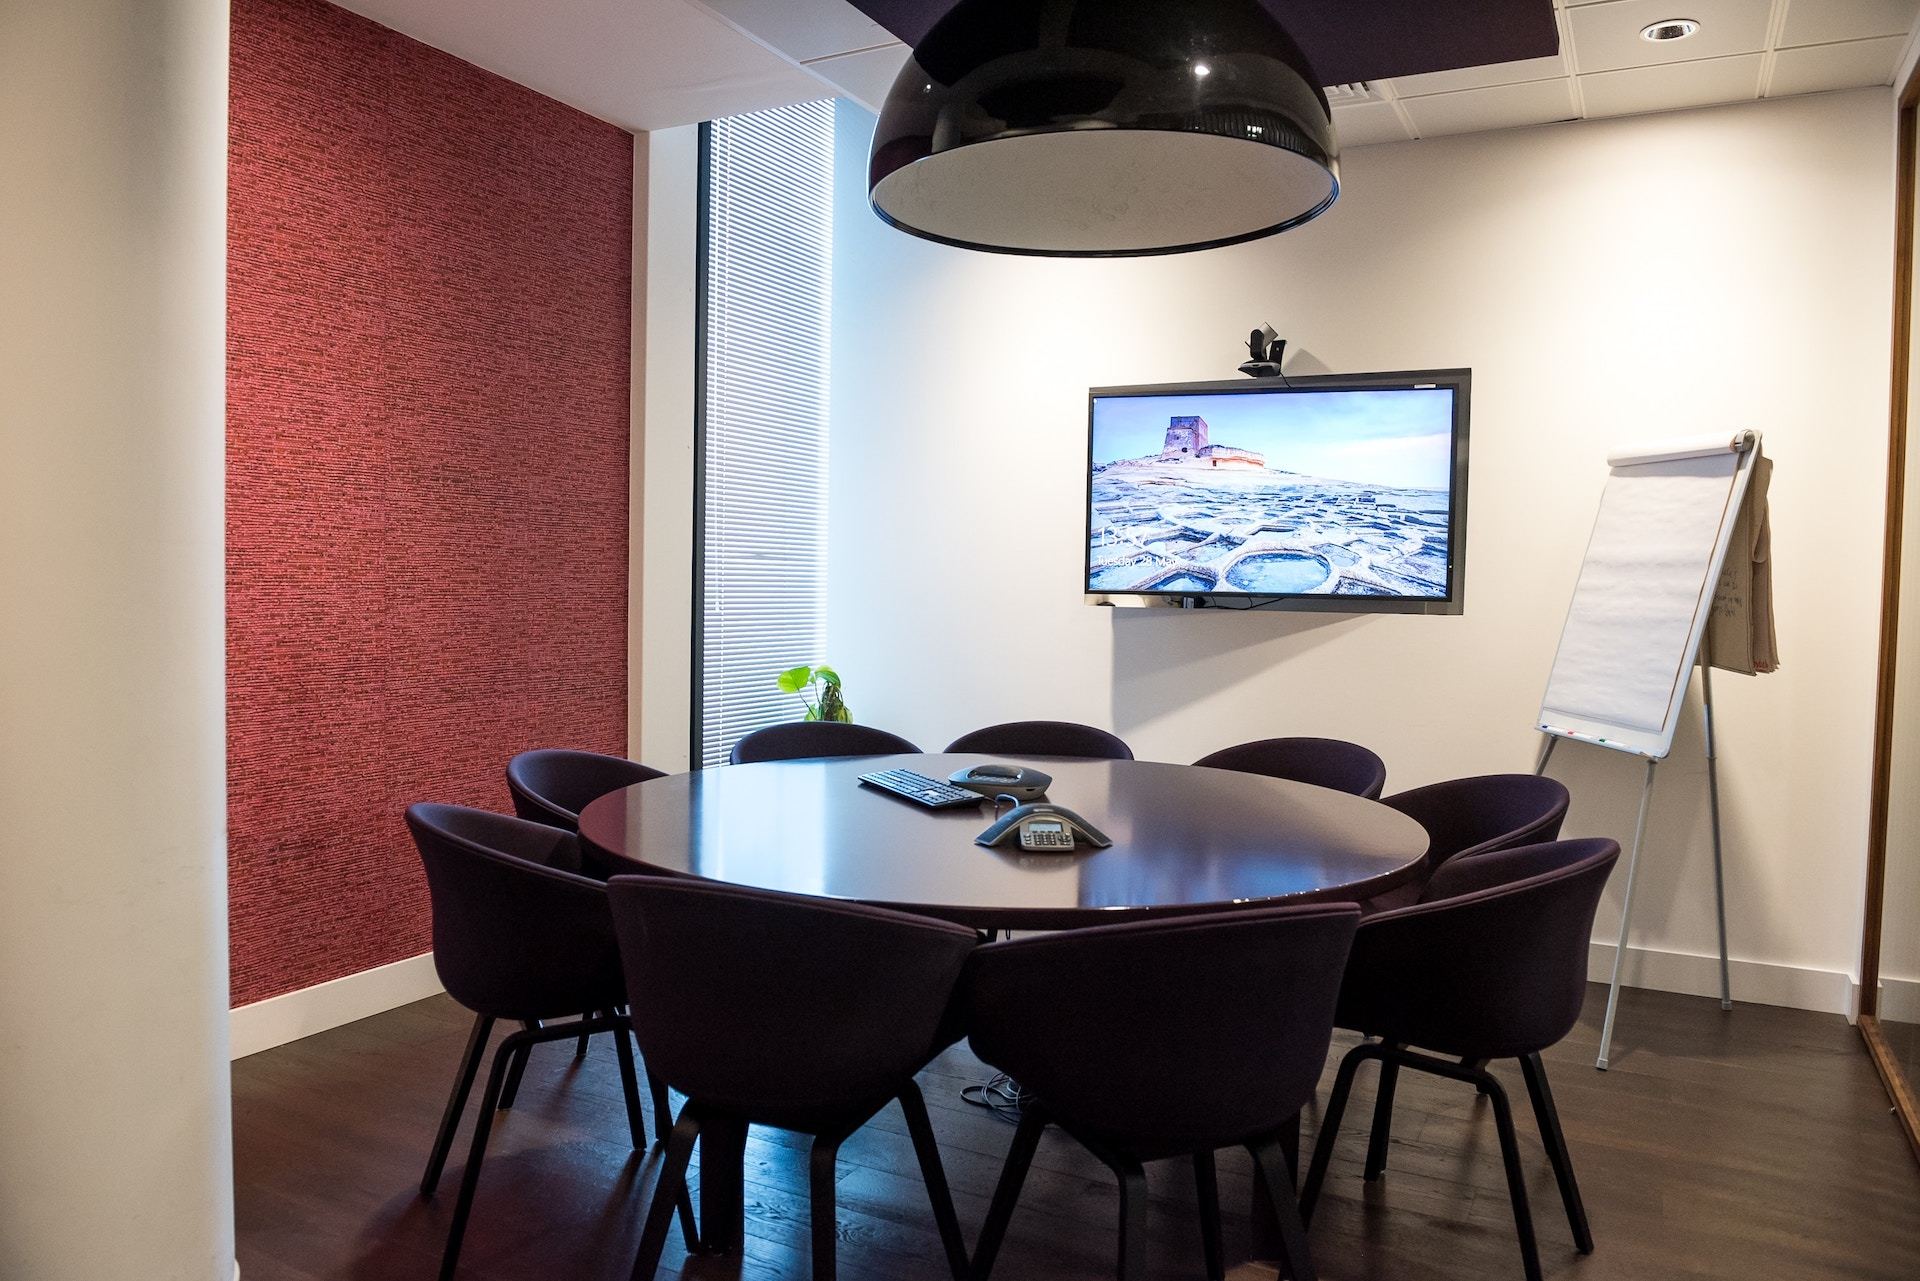 Manage your meeting rooms' resources / YAROOMS